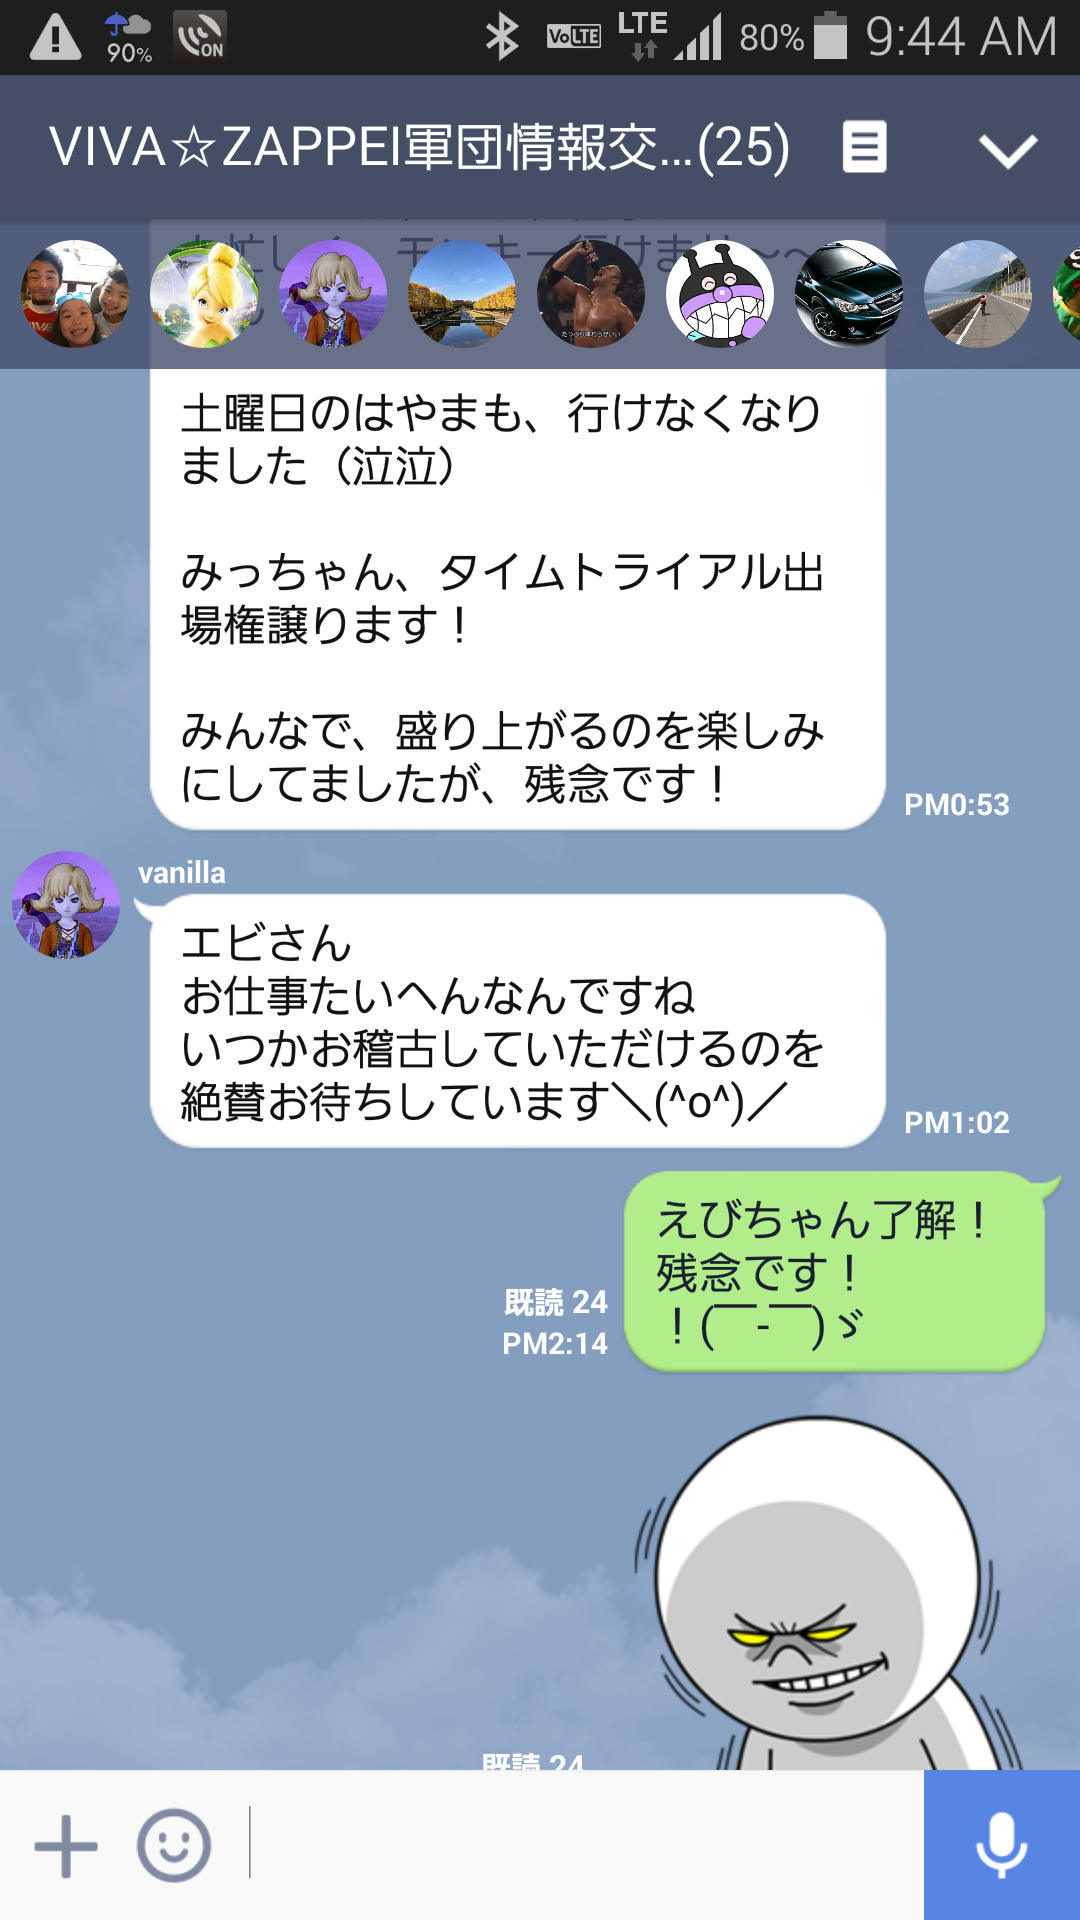 Screenshot_2015-11-08-09-44-45.png